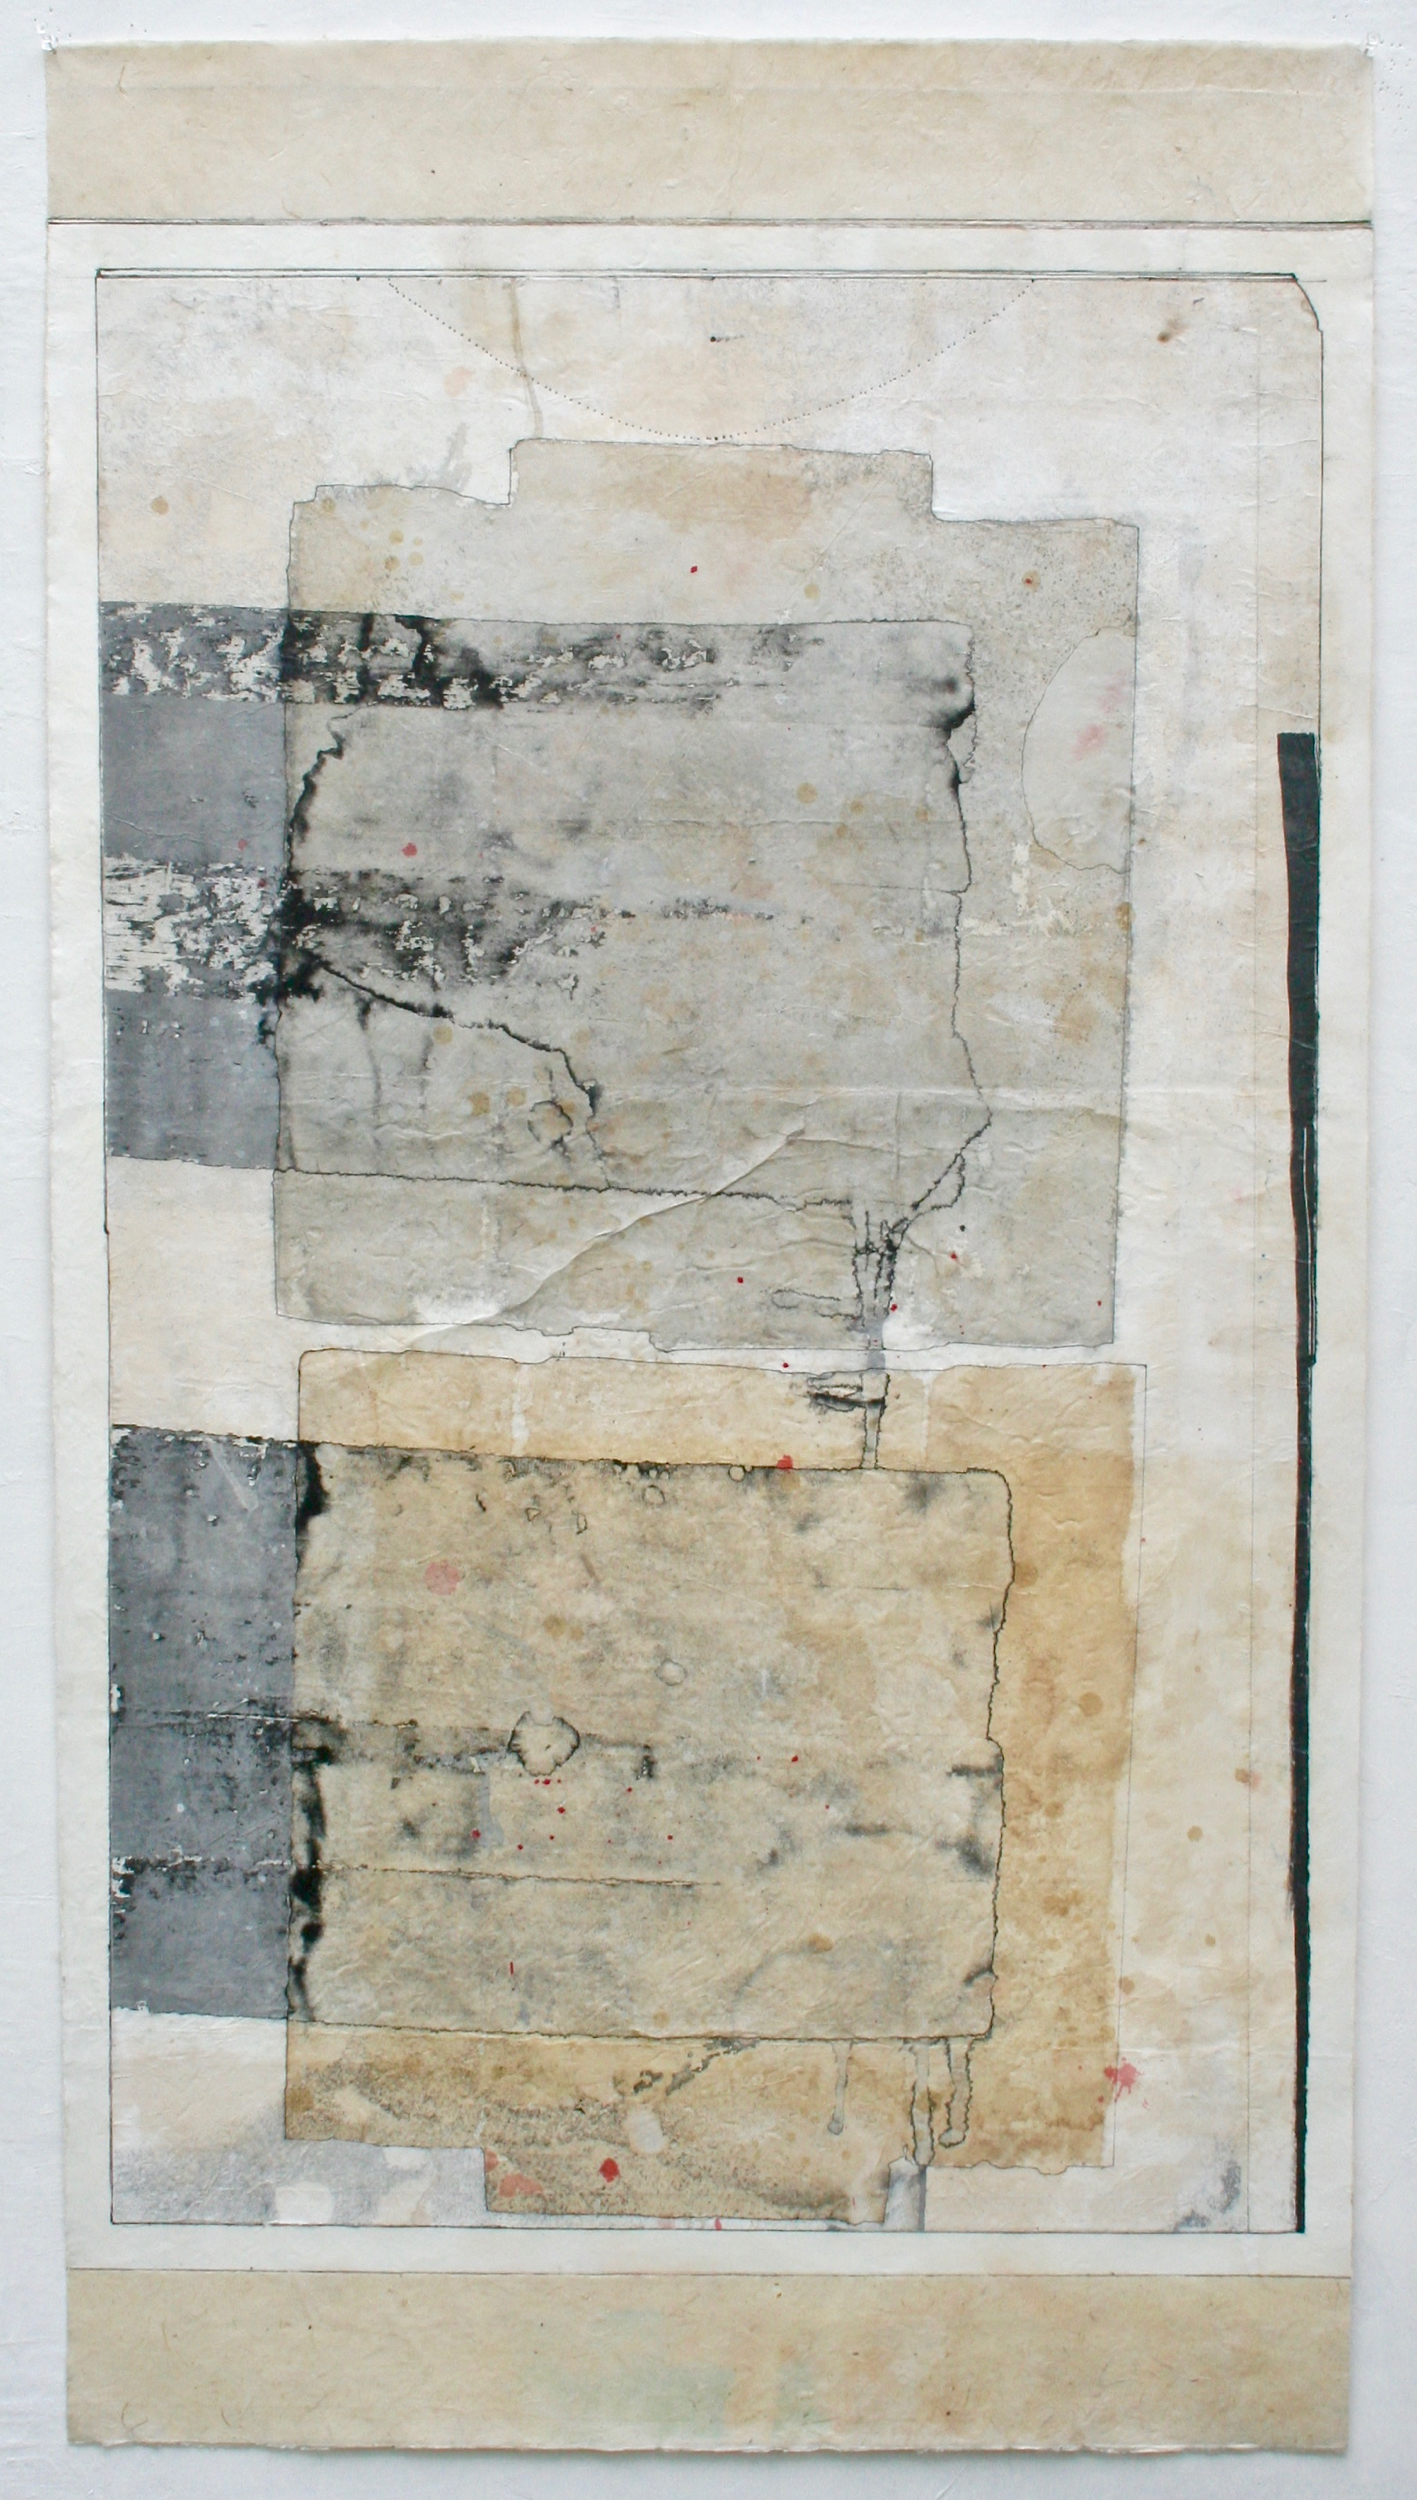 aerial sites  mixed media on Tibetan paper  48 x 25.5  .  .  .  .